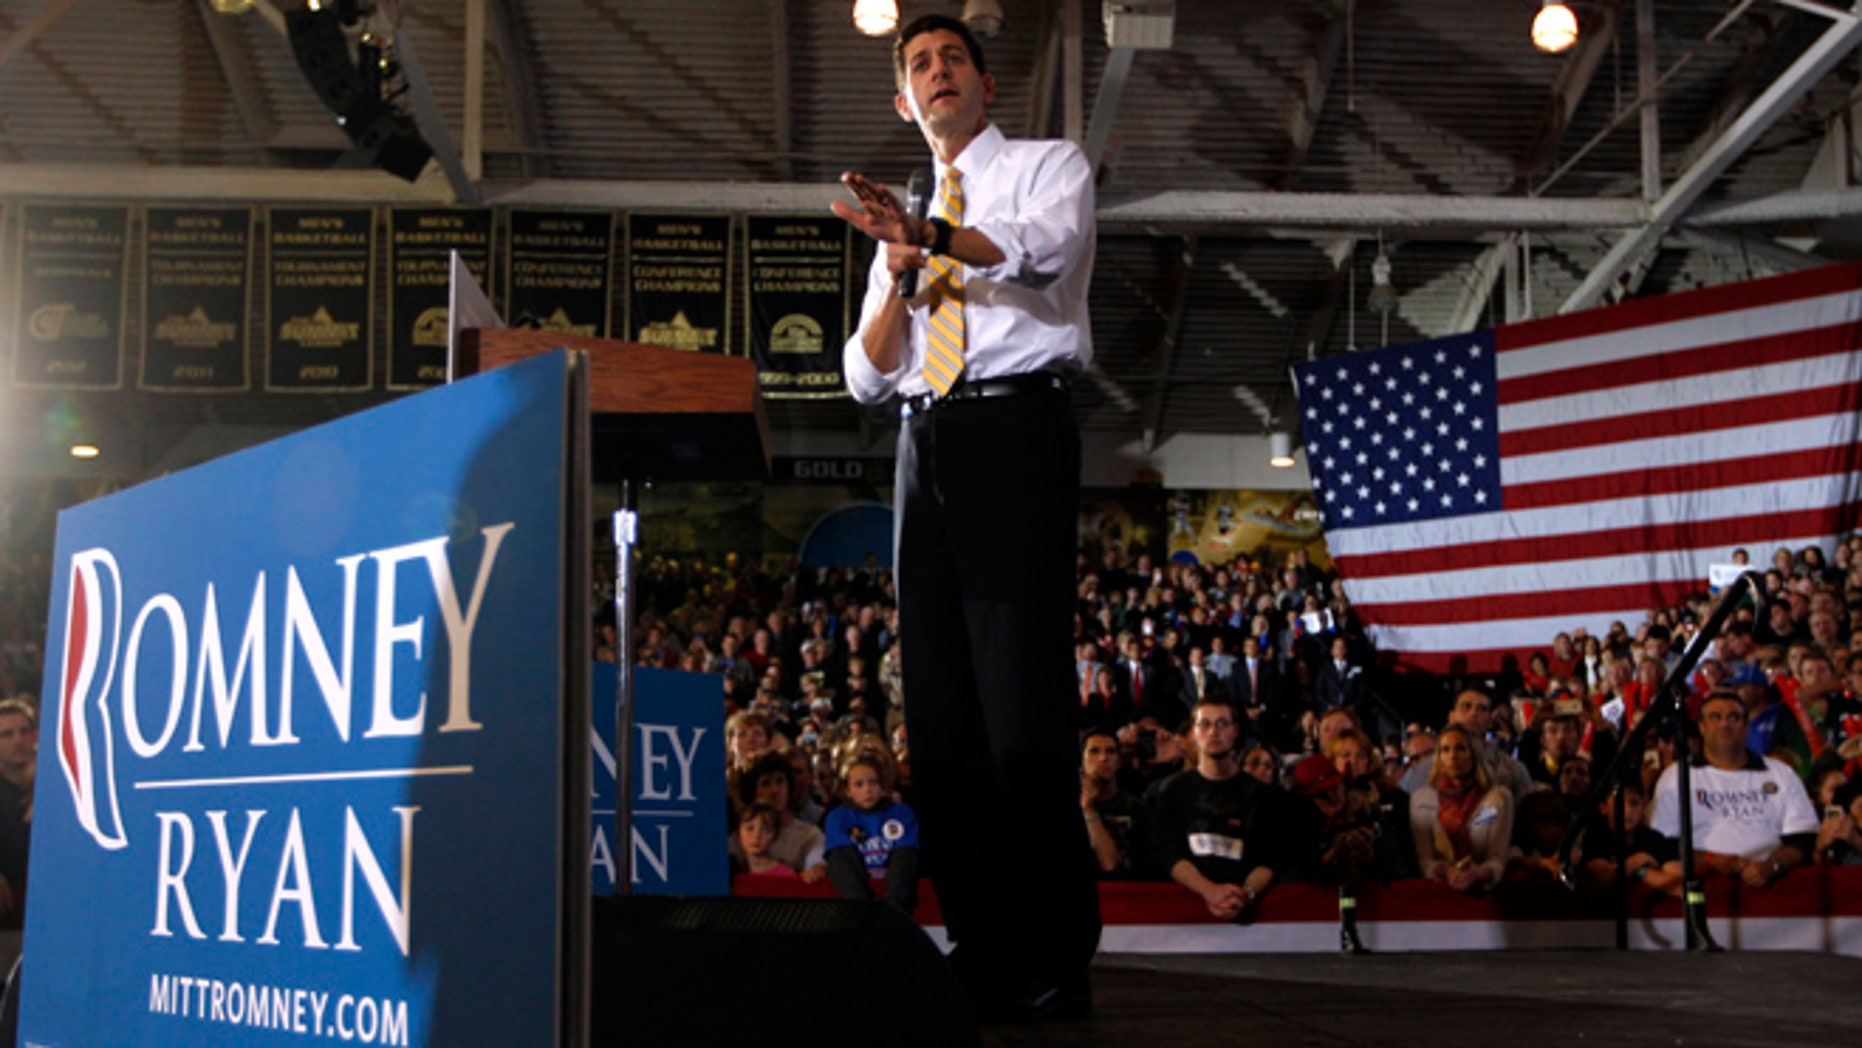 Oct. 8, 2012: Paul Ryan speaks during a campaign event at Oakland University in Rochester, Mich.